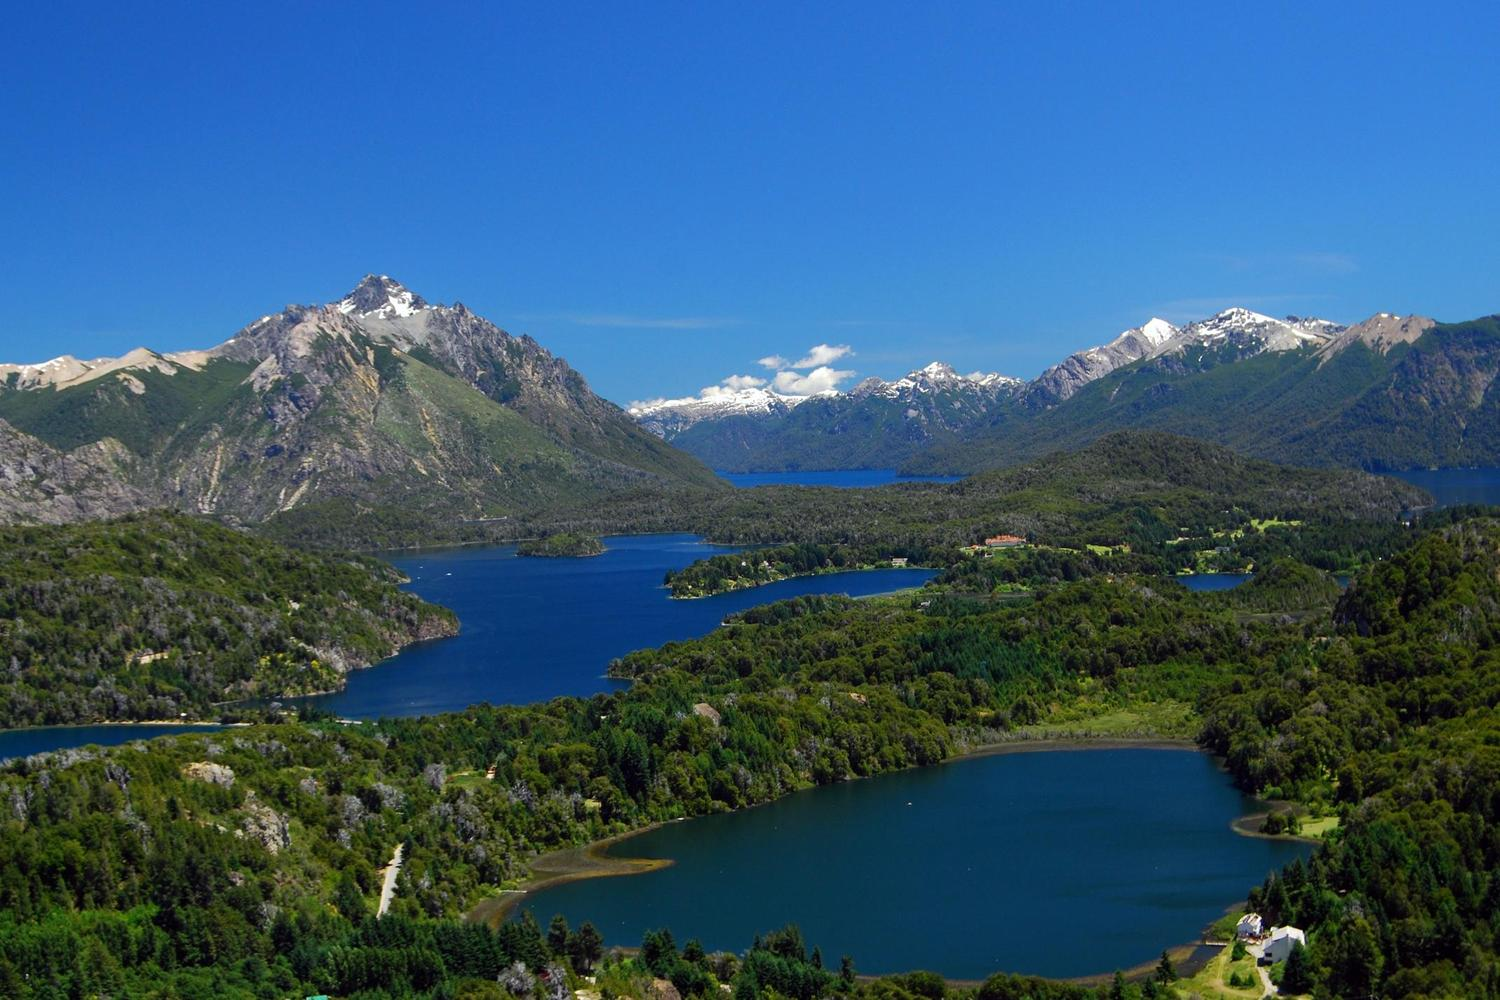 Views over the lakes of Bariloche, Argentina